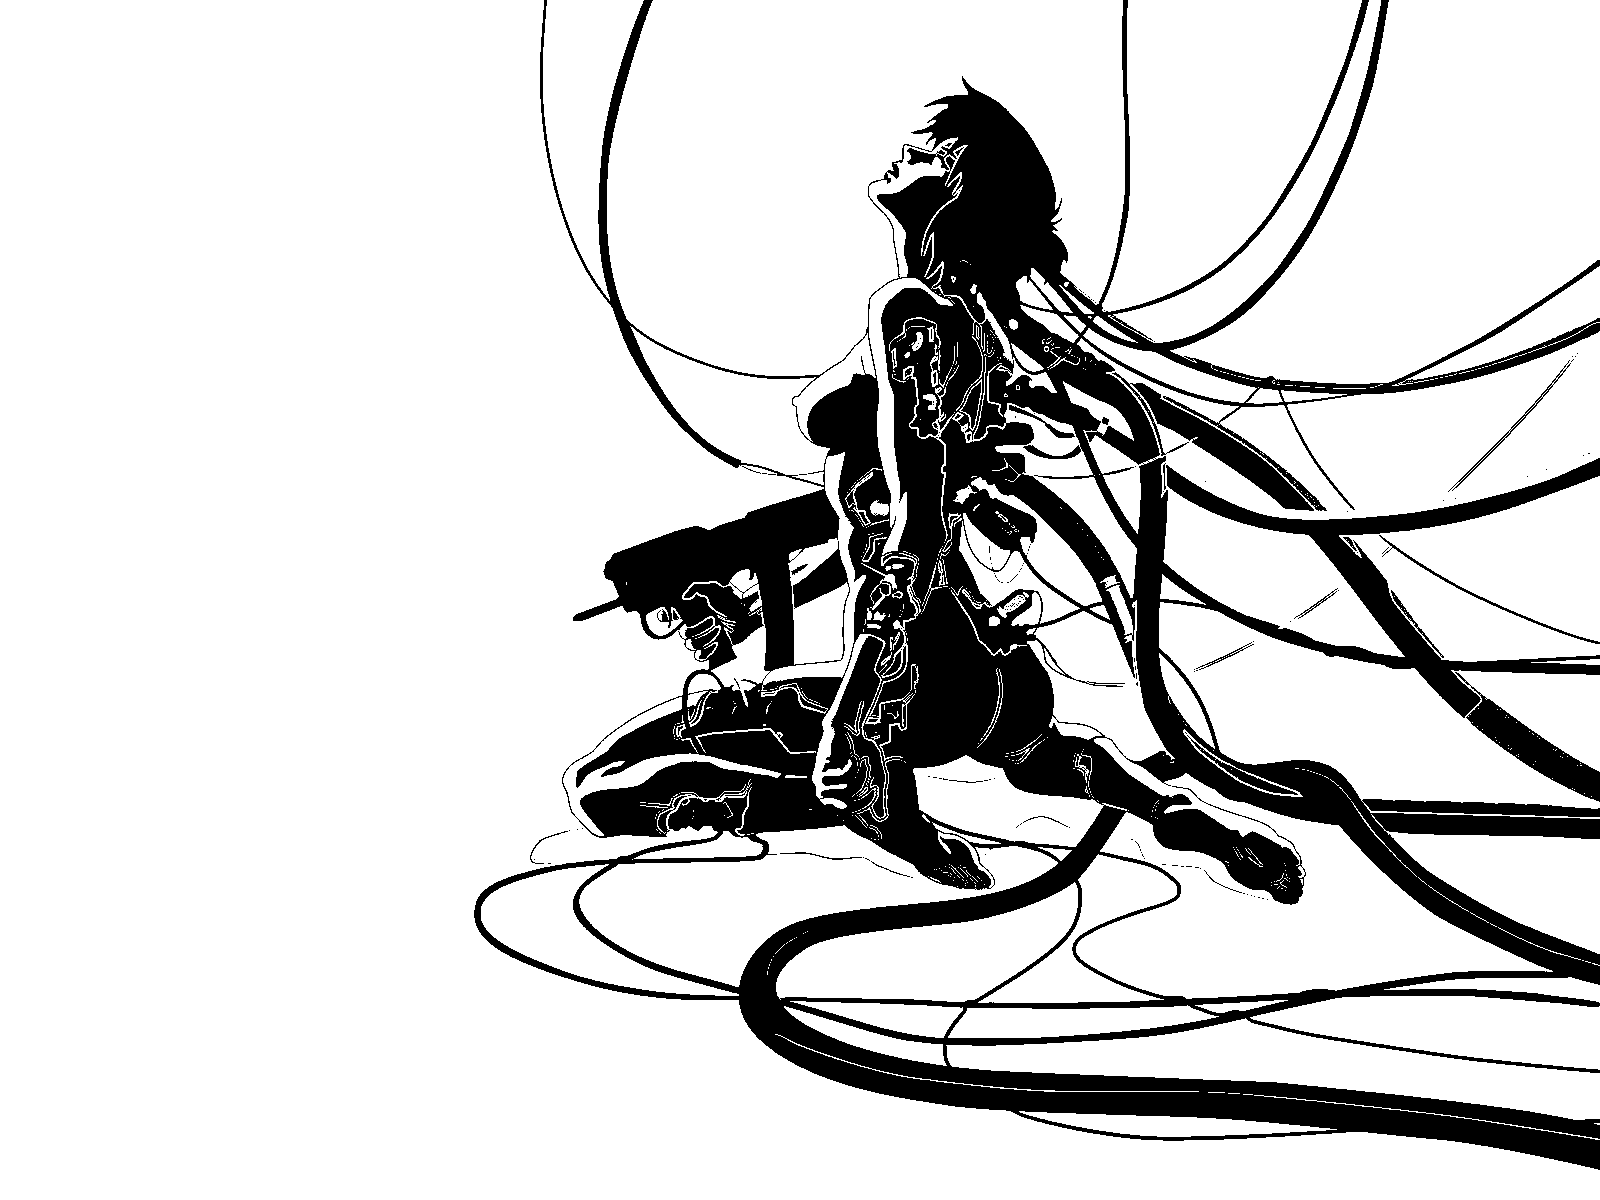 Ghost In The Shell Imgur 1146589 Png Images Pngio